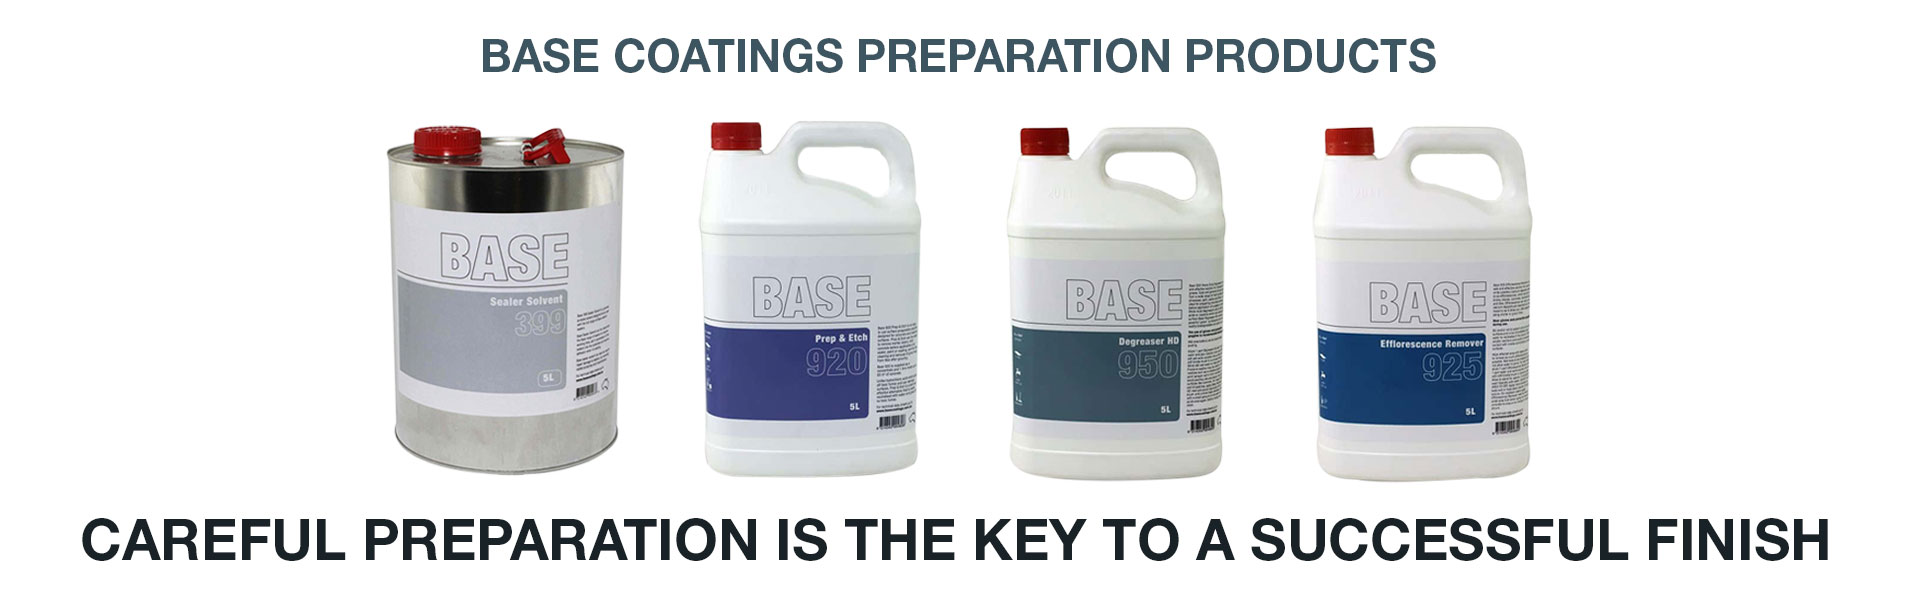 Preparation Products